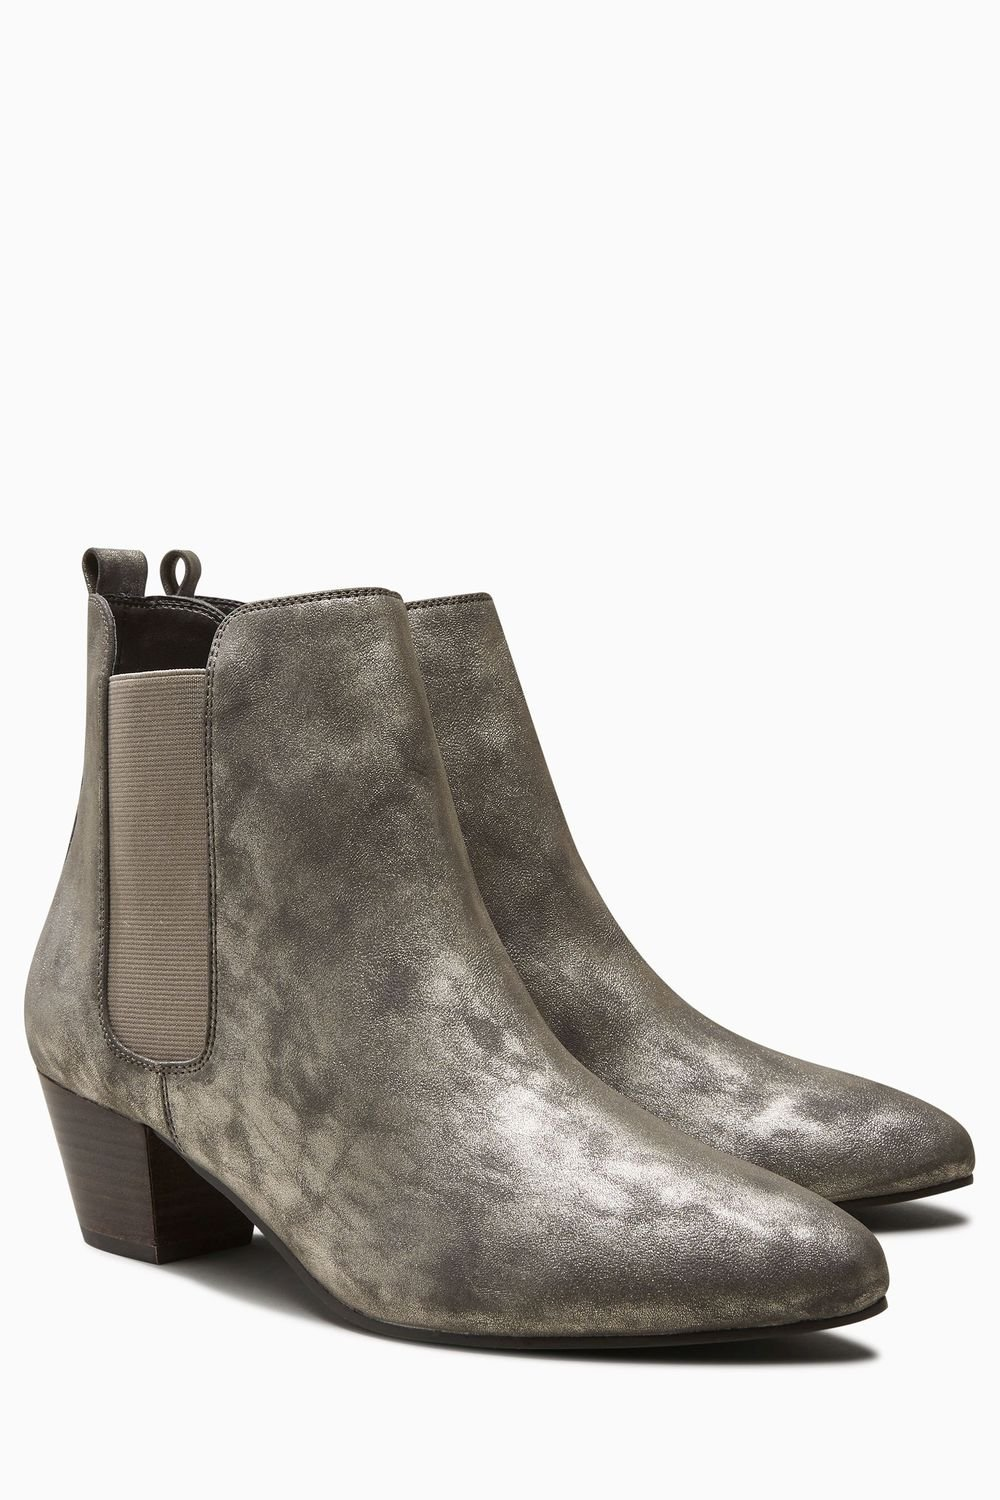 Next Western Style Chelsea Boots Online  3f30704f33